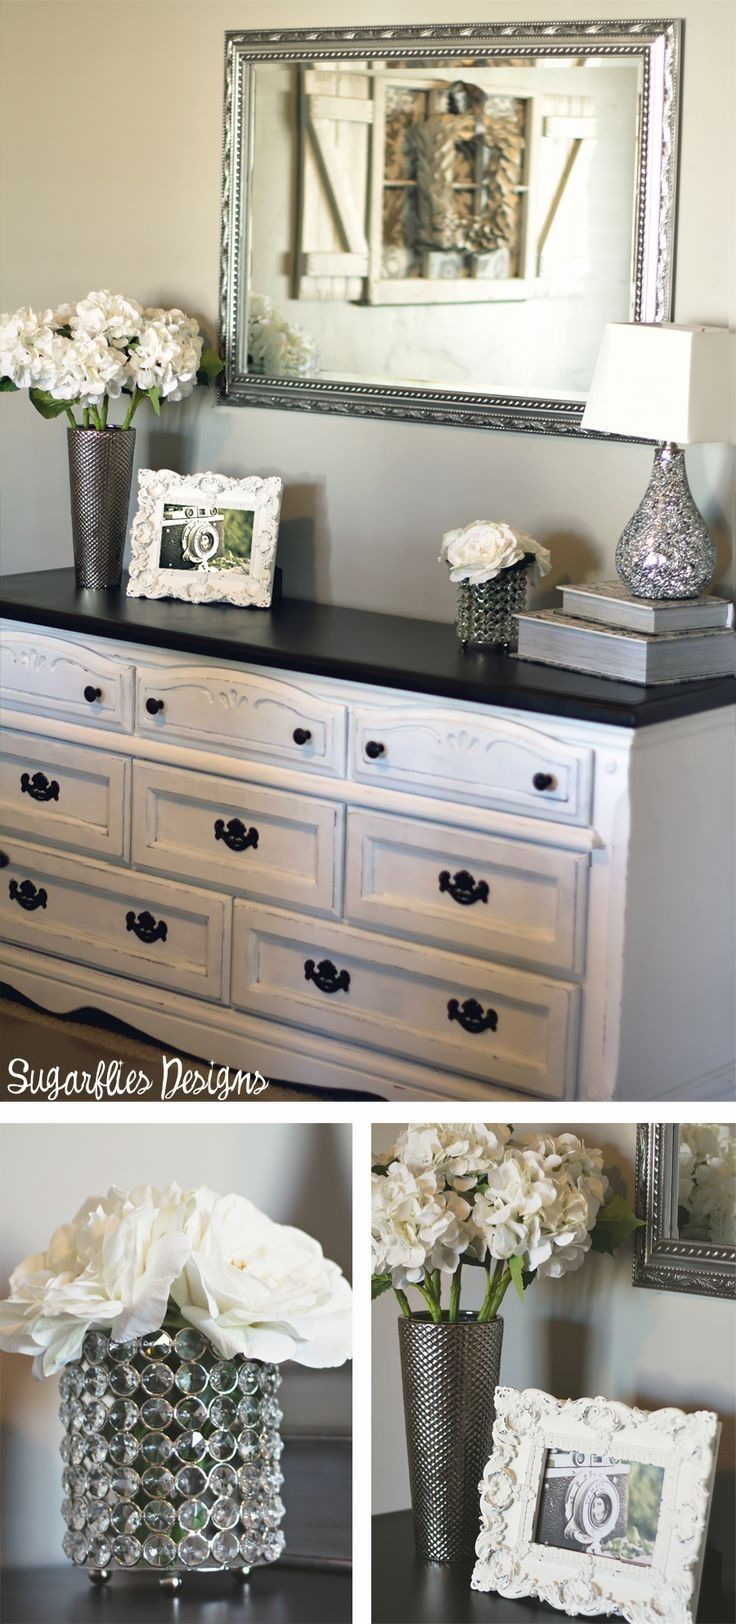 Bedroom Dresser Decorating Ideas Inspirational Best 25 Dresser top     Bedroom Dresser Decorating Ideas Inspirational Best 25 Dresser top Decor  Ideas On Pinterest